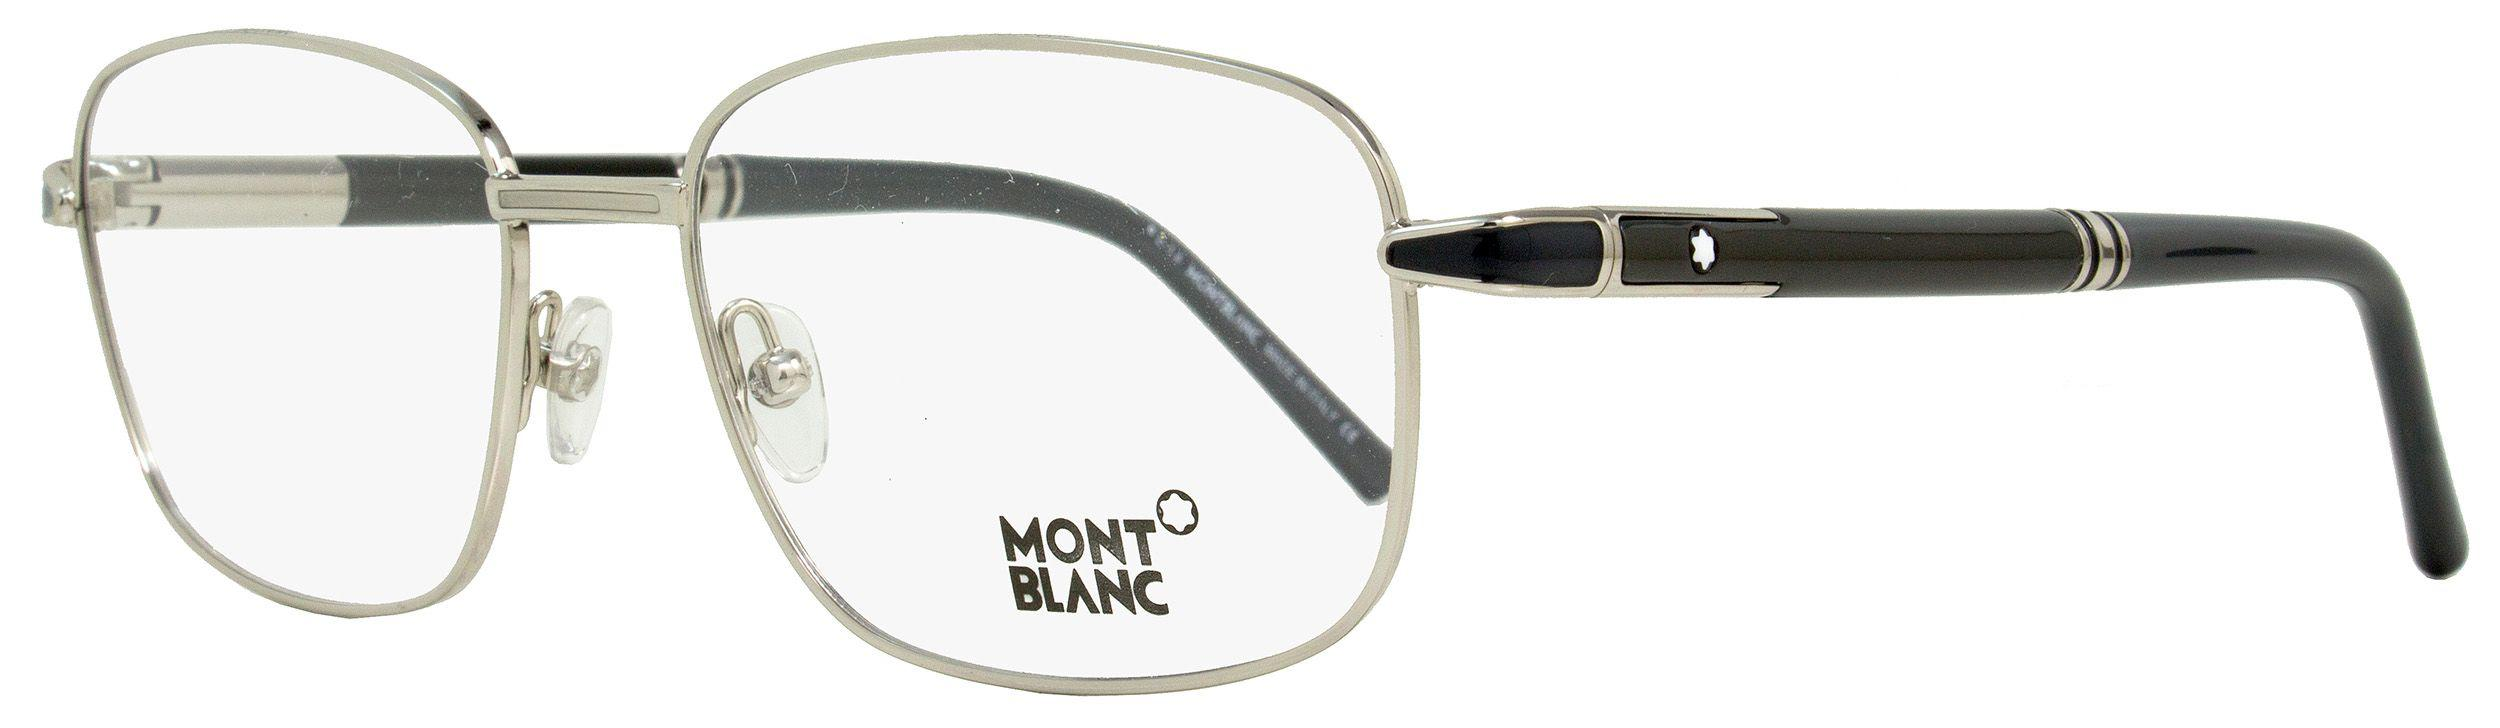 5ca0bf8691e2 Montblanc. Men's Rectangular Eyeglasses Mb529 016 Size: 56mm Palladium/black  529